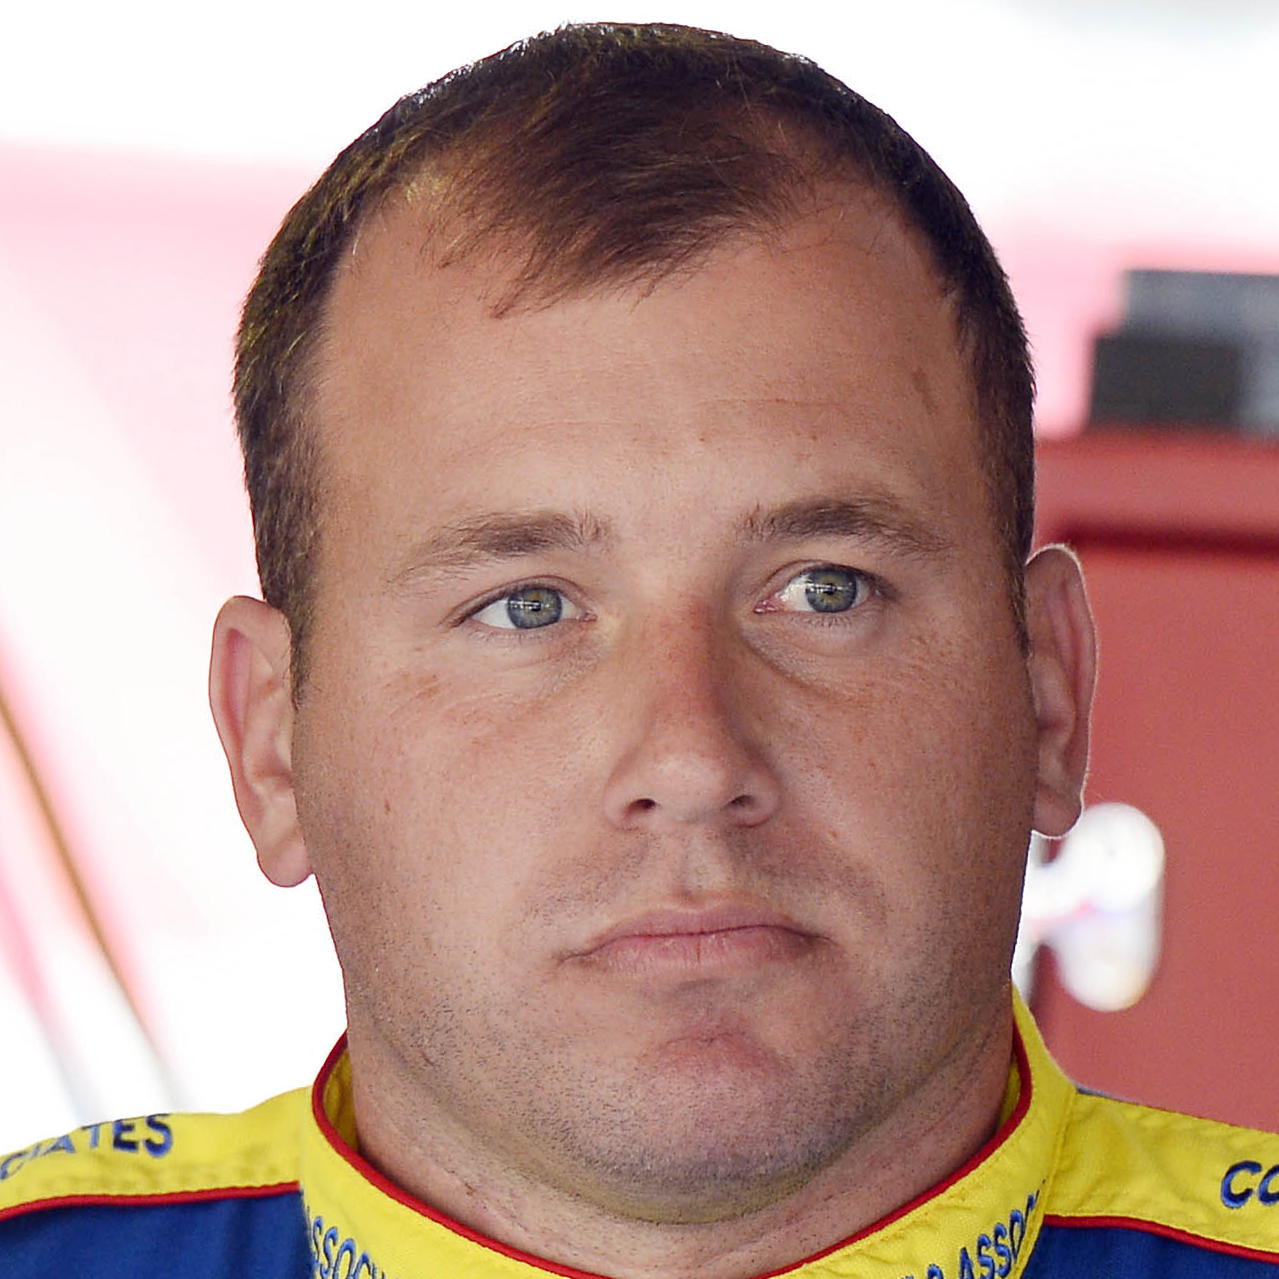 Ryan Newman Headshot